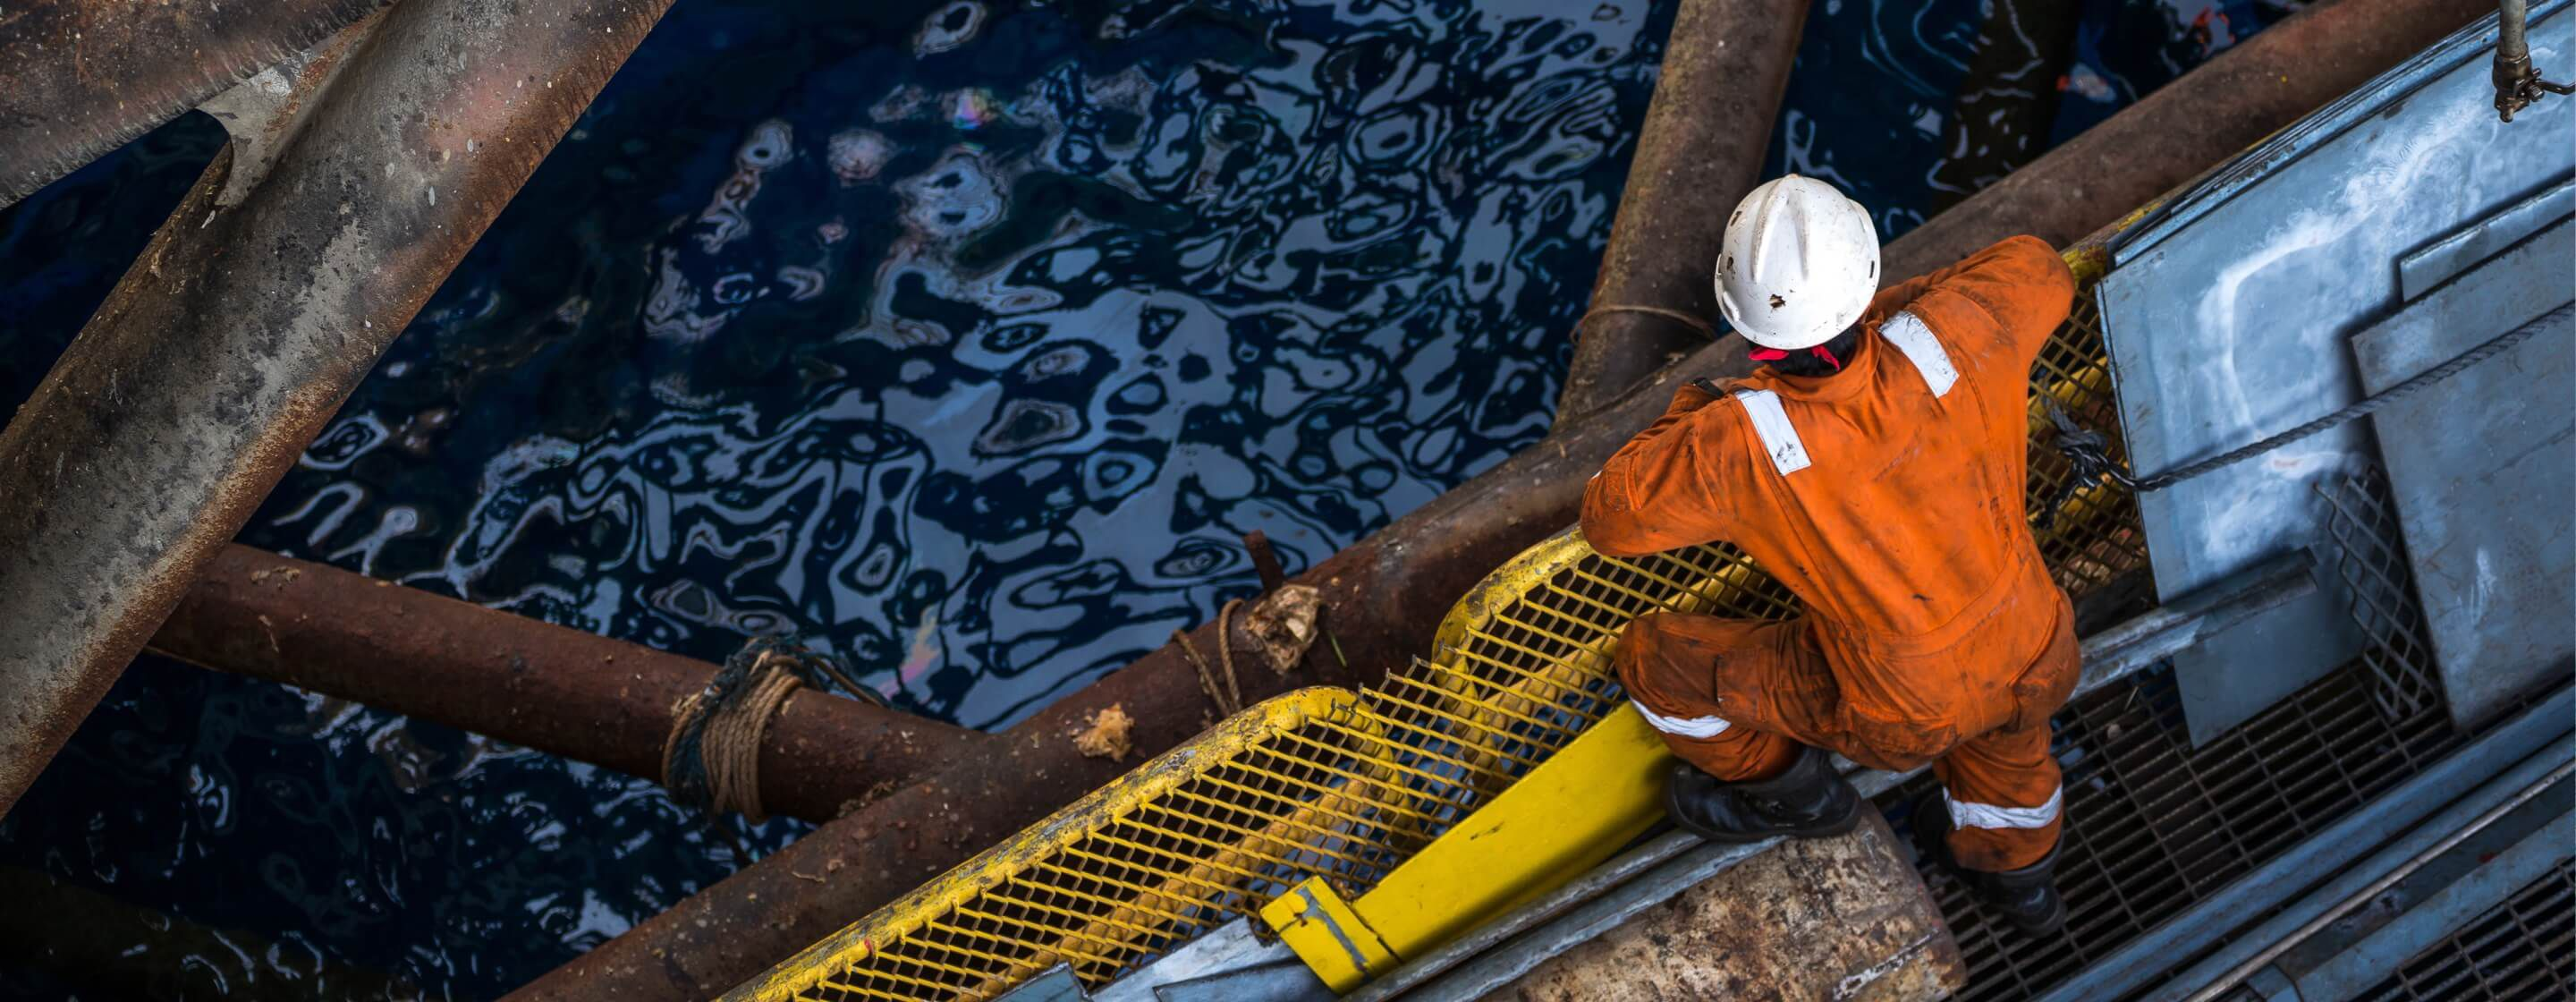 Overhead view of an offshore oil-rig worker in a jumpsuit, hard hat, and work boots looking down into ocean water